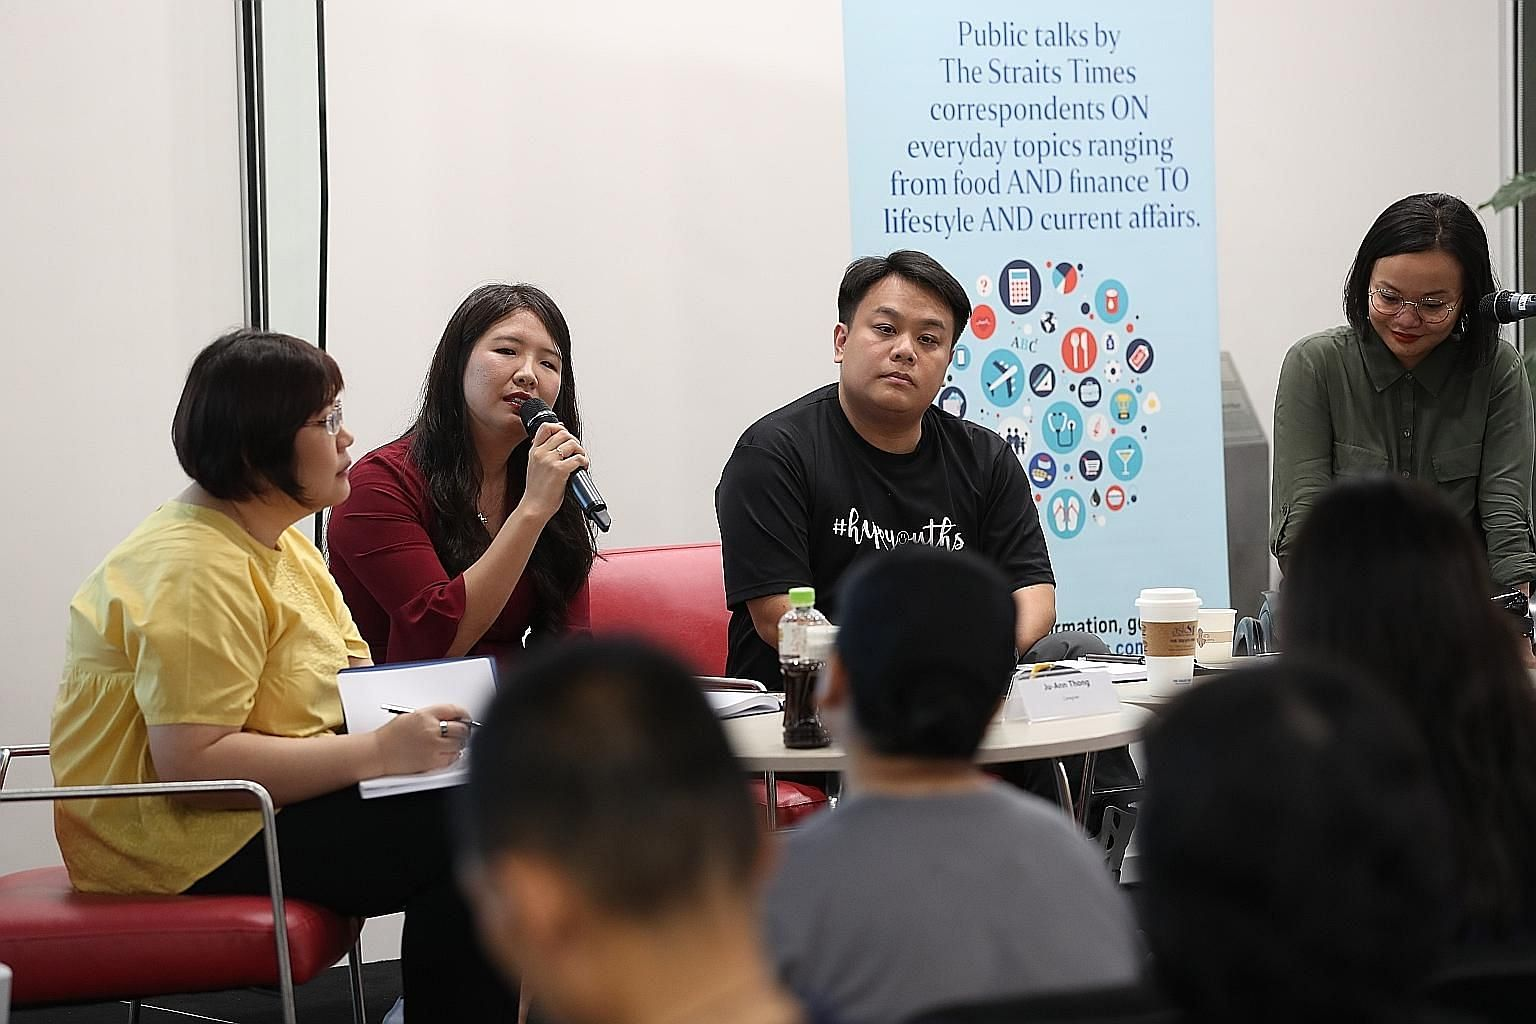 At the session were (from left) ST senior social affairs correspondent Theresa Tan, caregiver Ju Ann Thong, Character and Leadership Academy founder Delane Lim and employment specialist Azlin Amran of SPD.